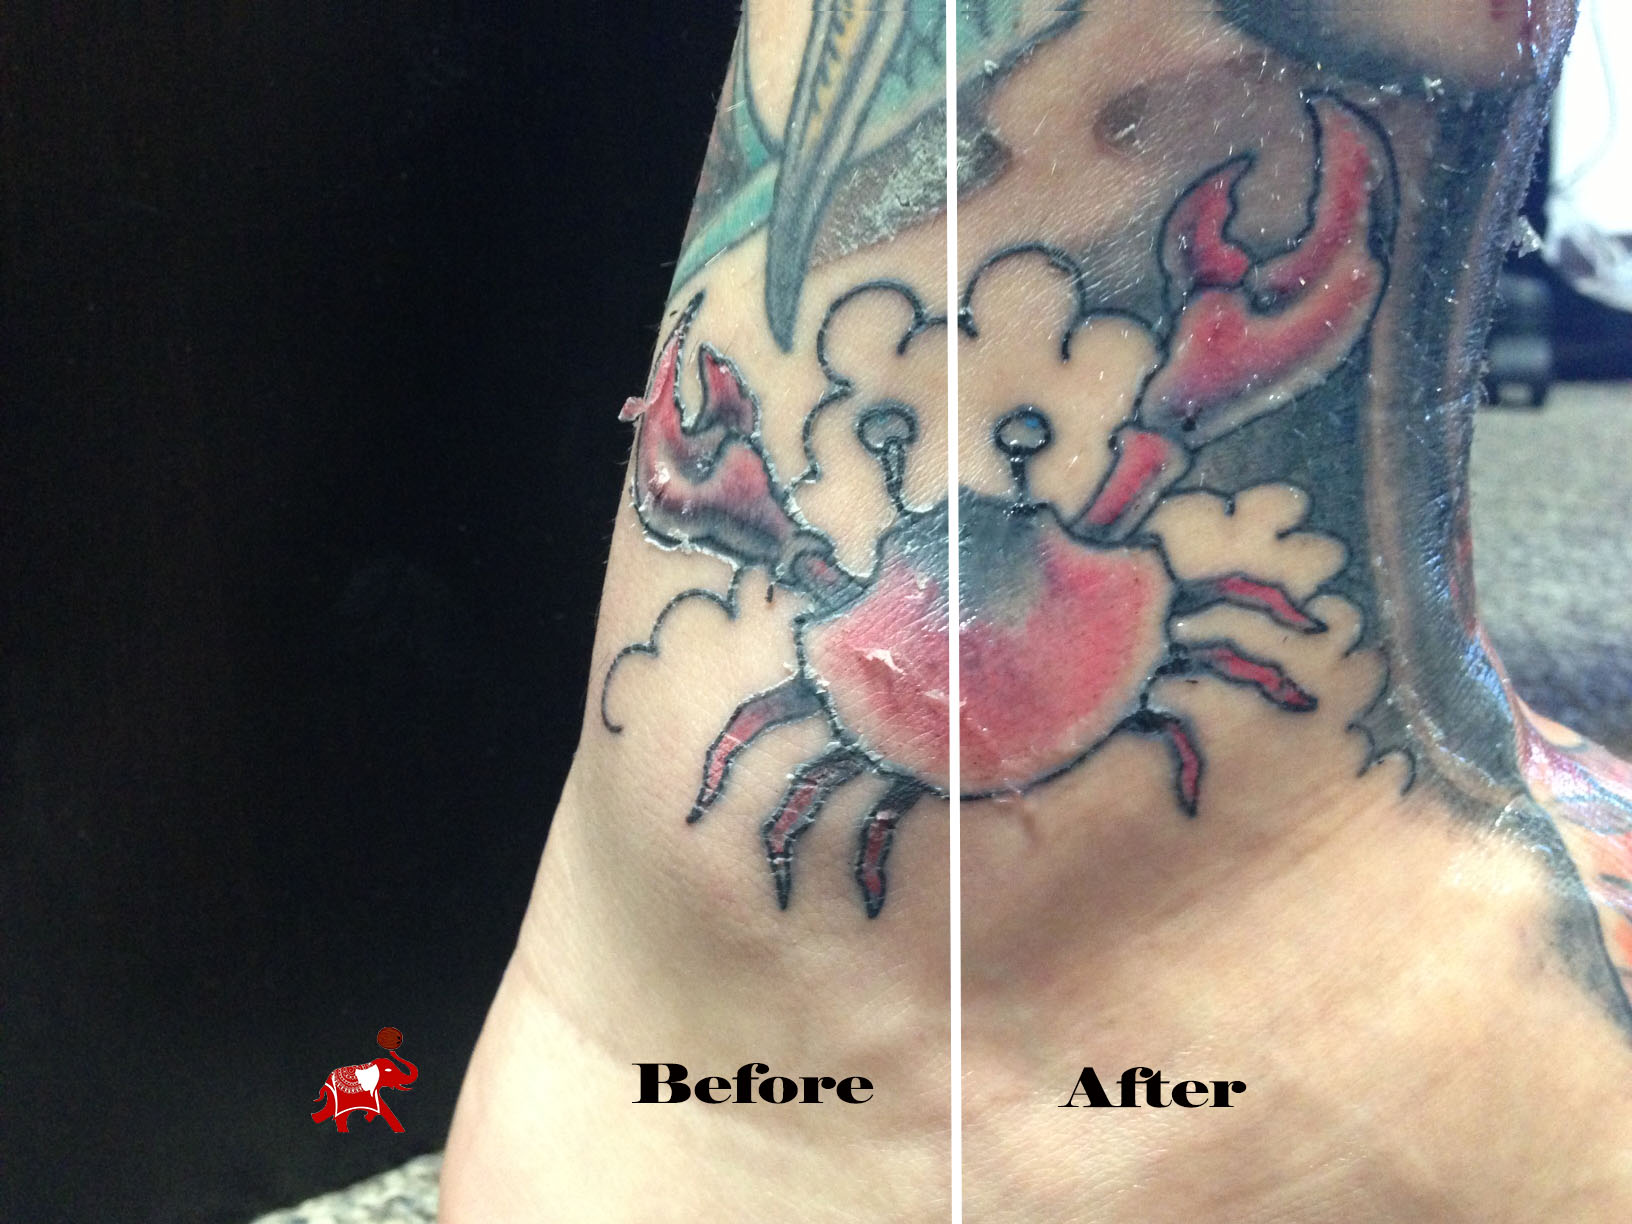 28 tattoo healing process with pictures tattoo for What do i put on a new tattoo